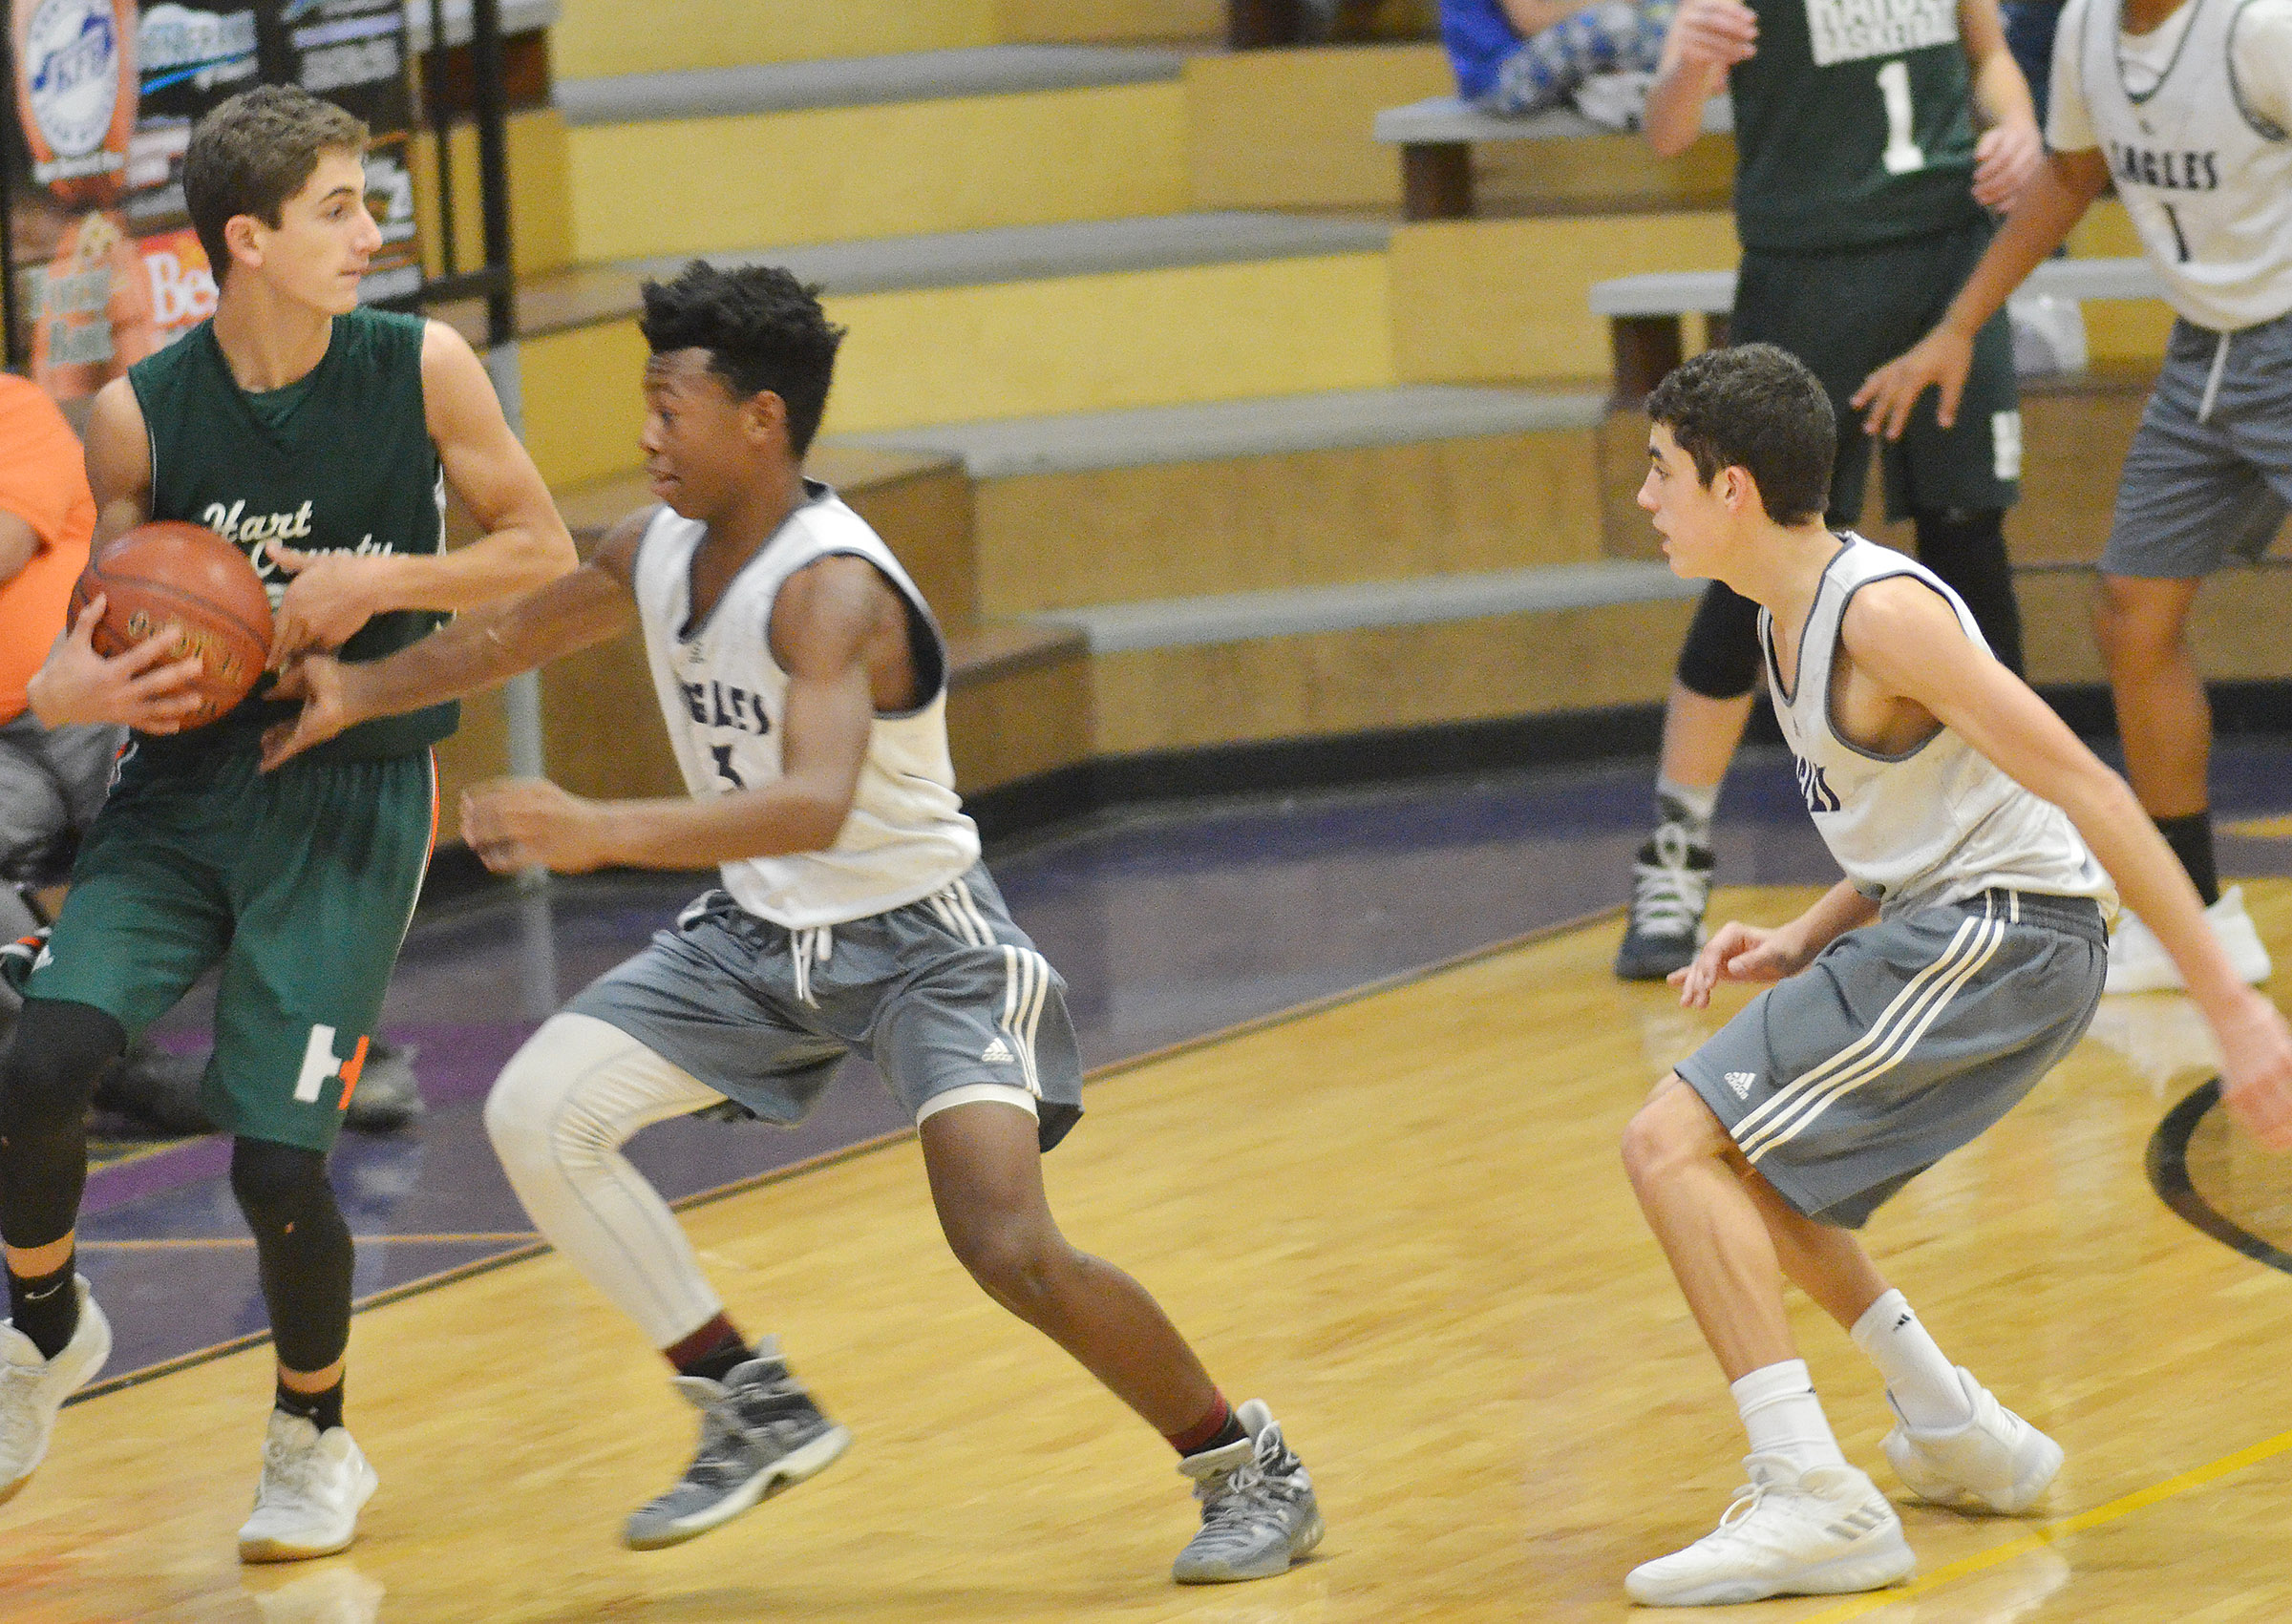 CHS freshmen Sae'von Buckner, at left, and Kameron Smith play defense.